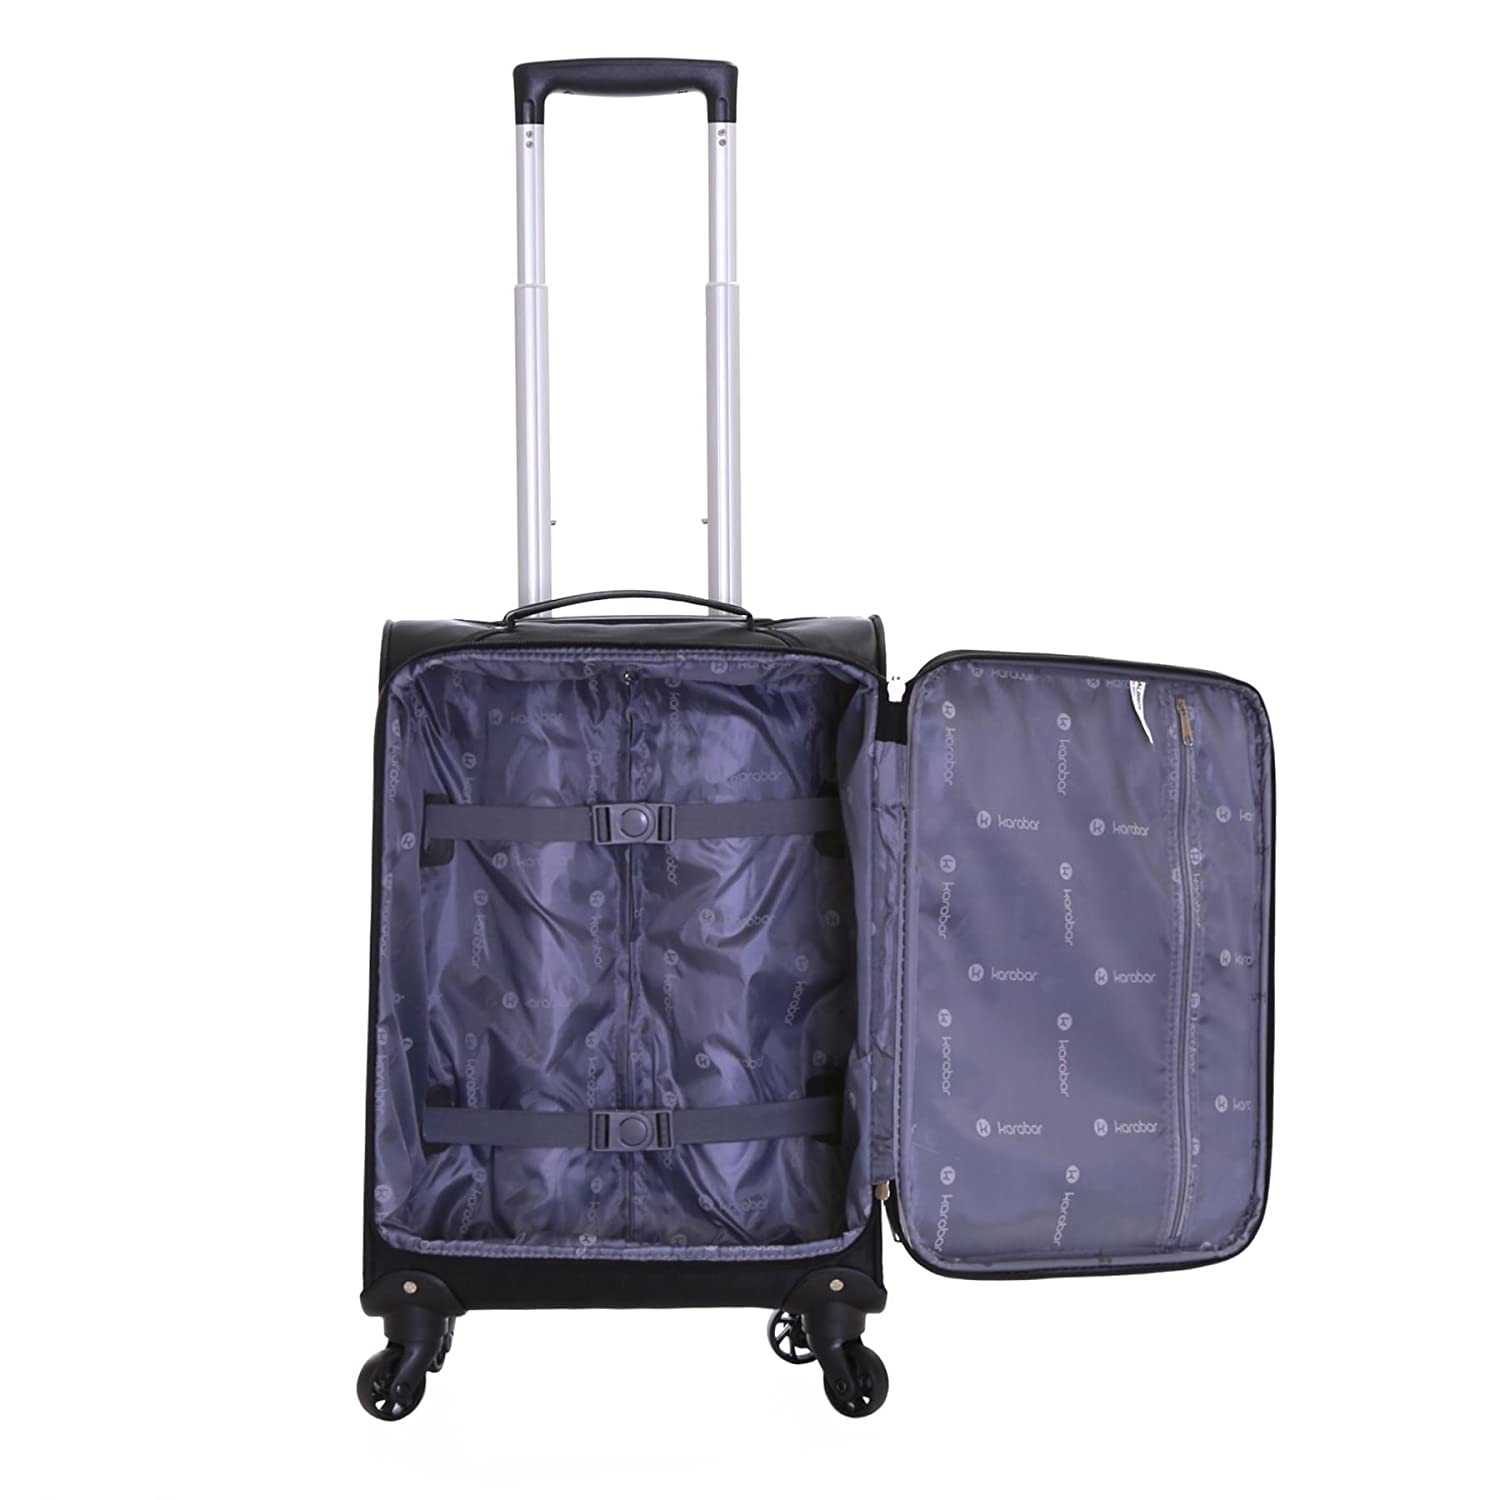 Karabar Lecce Set of 2 Lightweight Suitcases, Black: Amazon.co.uk ...